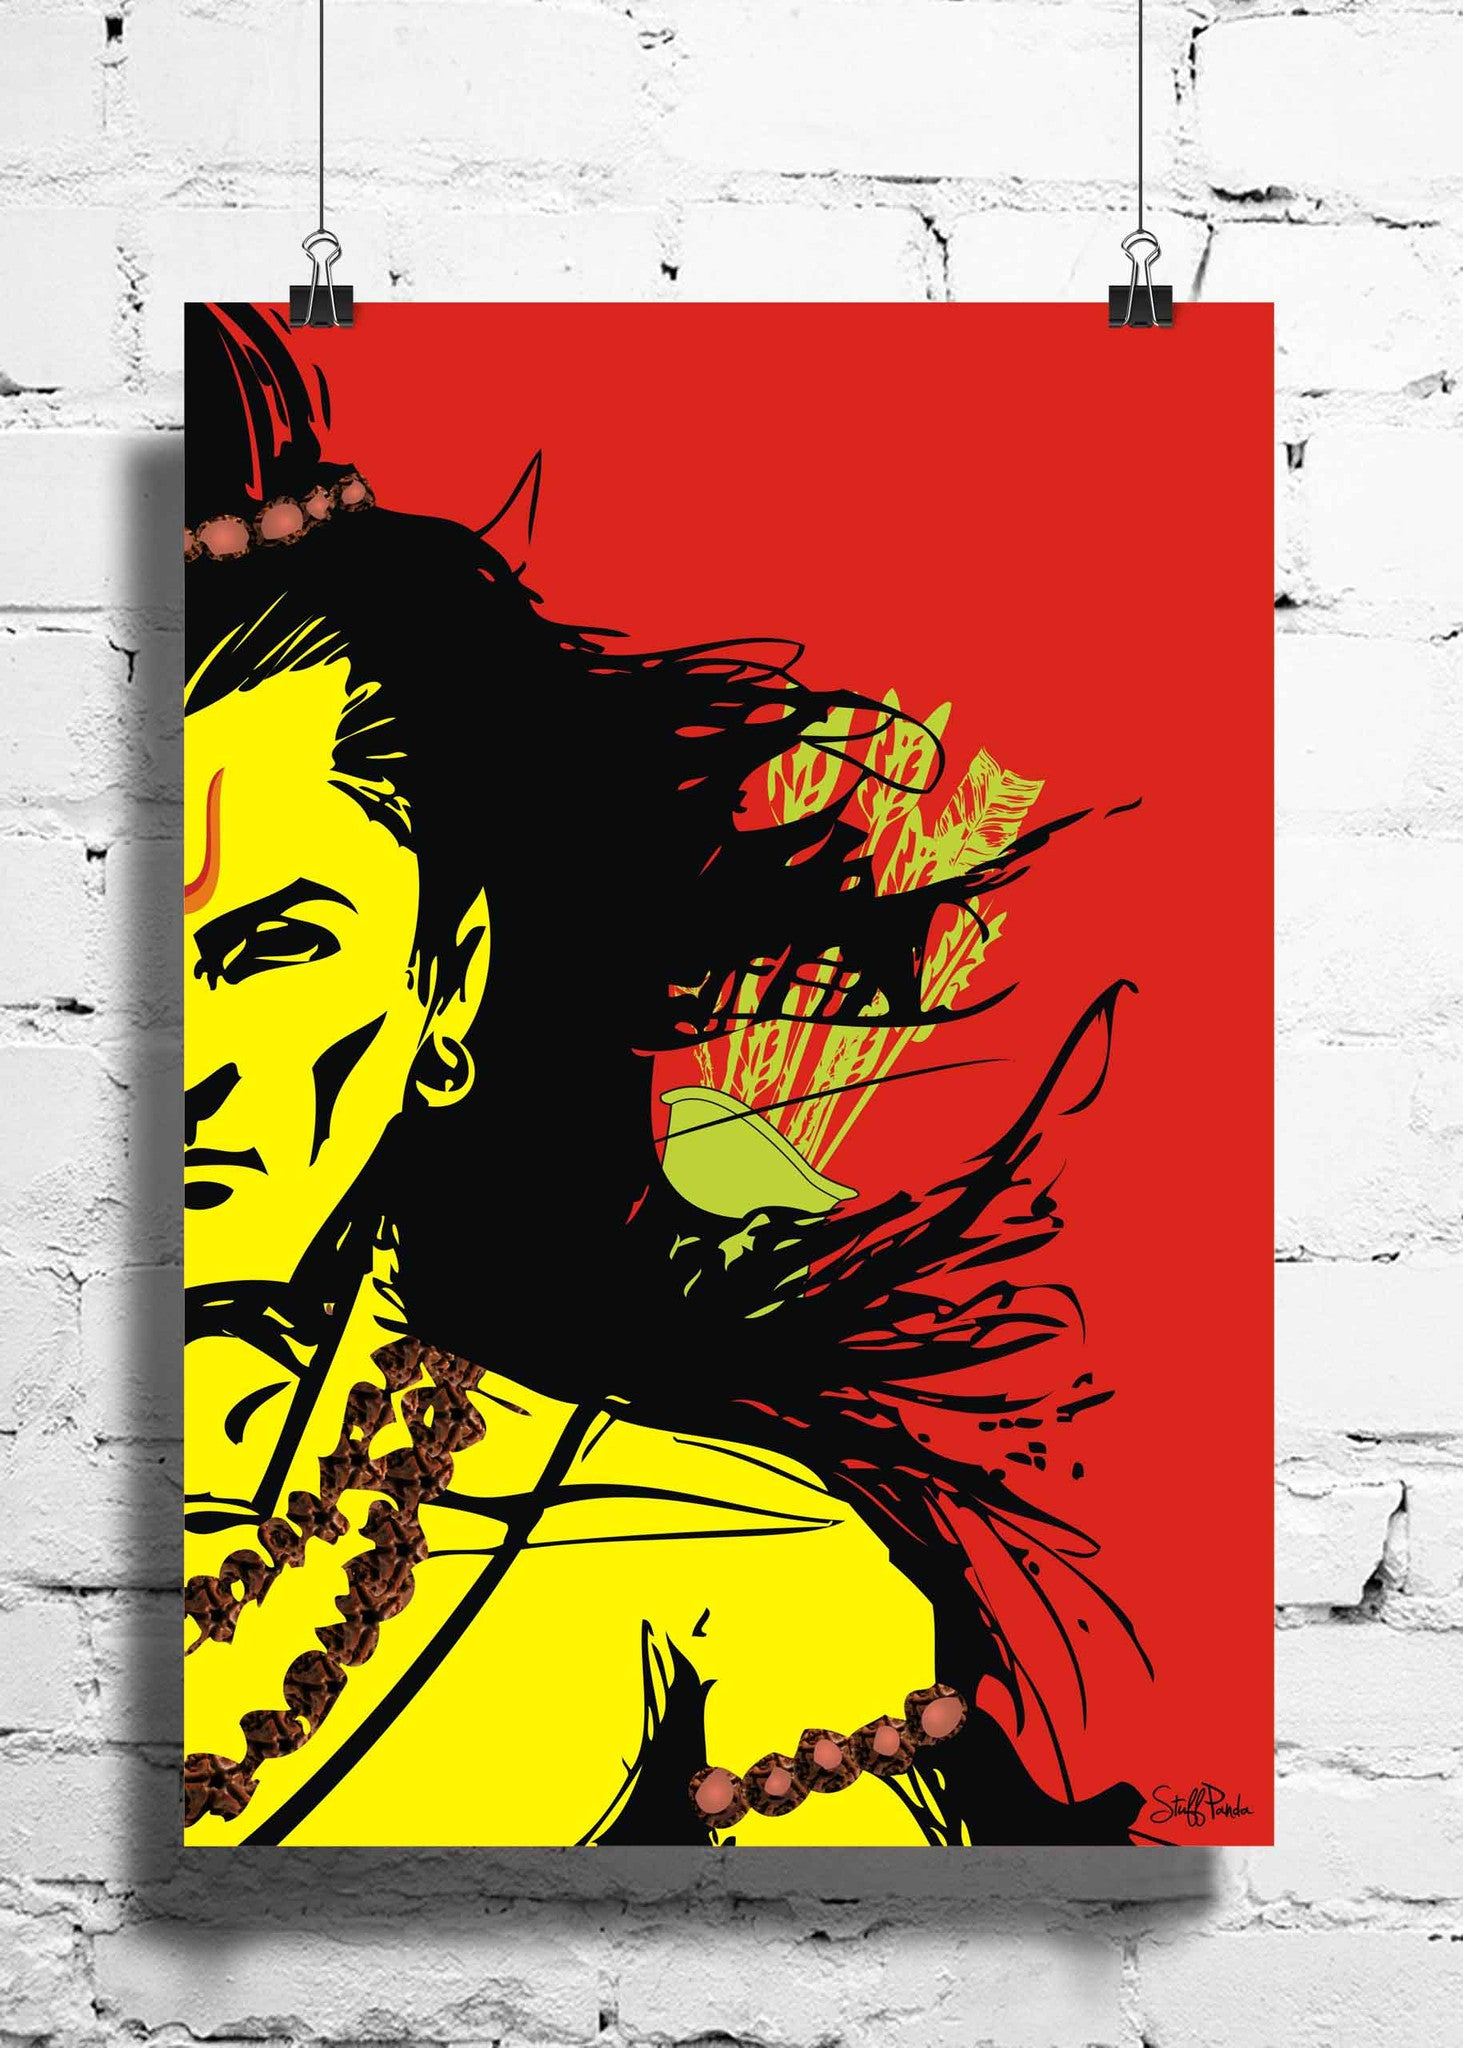 Cool Funky Mythology Lord Rama wall posters, art prints, stickers decals Red - stuffpanda - 1